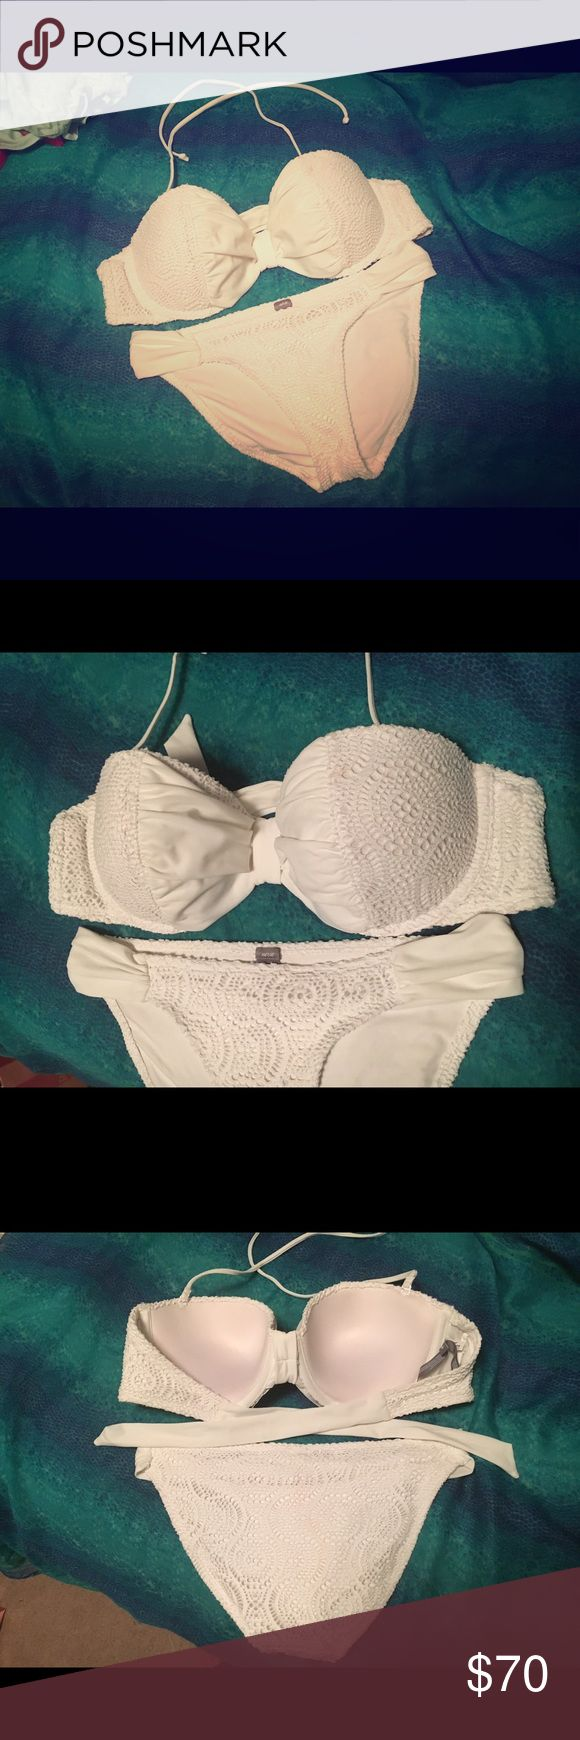 Aerie bikini Top is a size 36 D and bottoms are a size medium from Aerie by American Eagle. Great fit with padded and underwire cups! It can be worn strapless or as a halter top. It fits like a bra and holds you up to keep you looking fresh the whole time you're wearing it. 😎 aerie Swim Bikinis